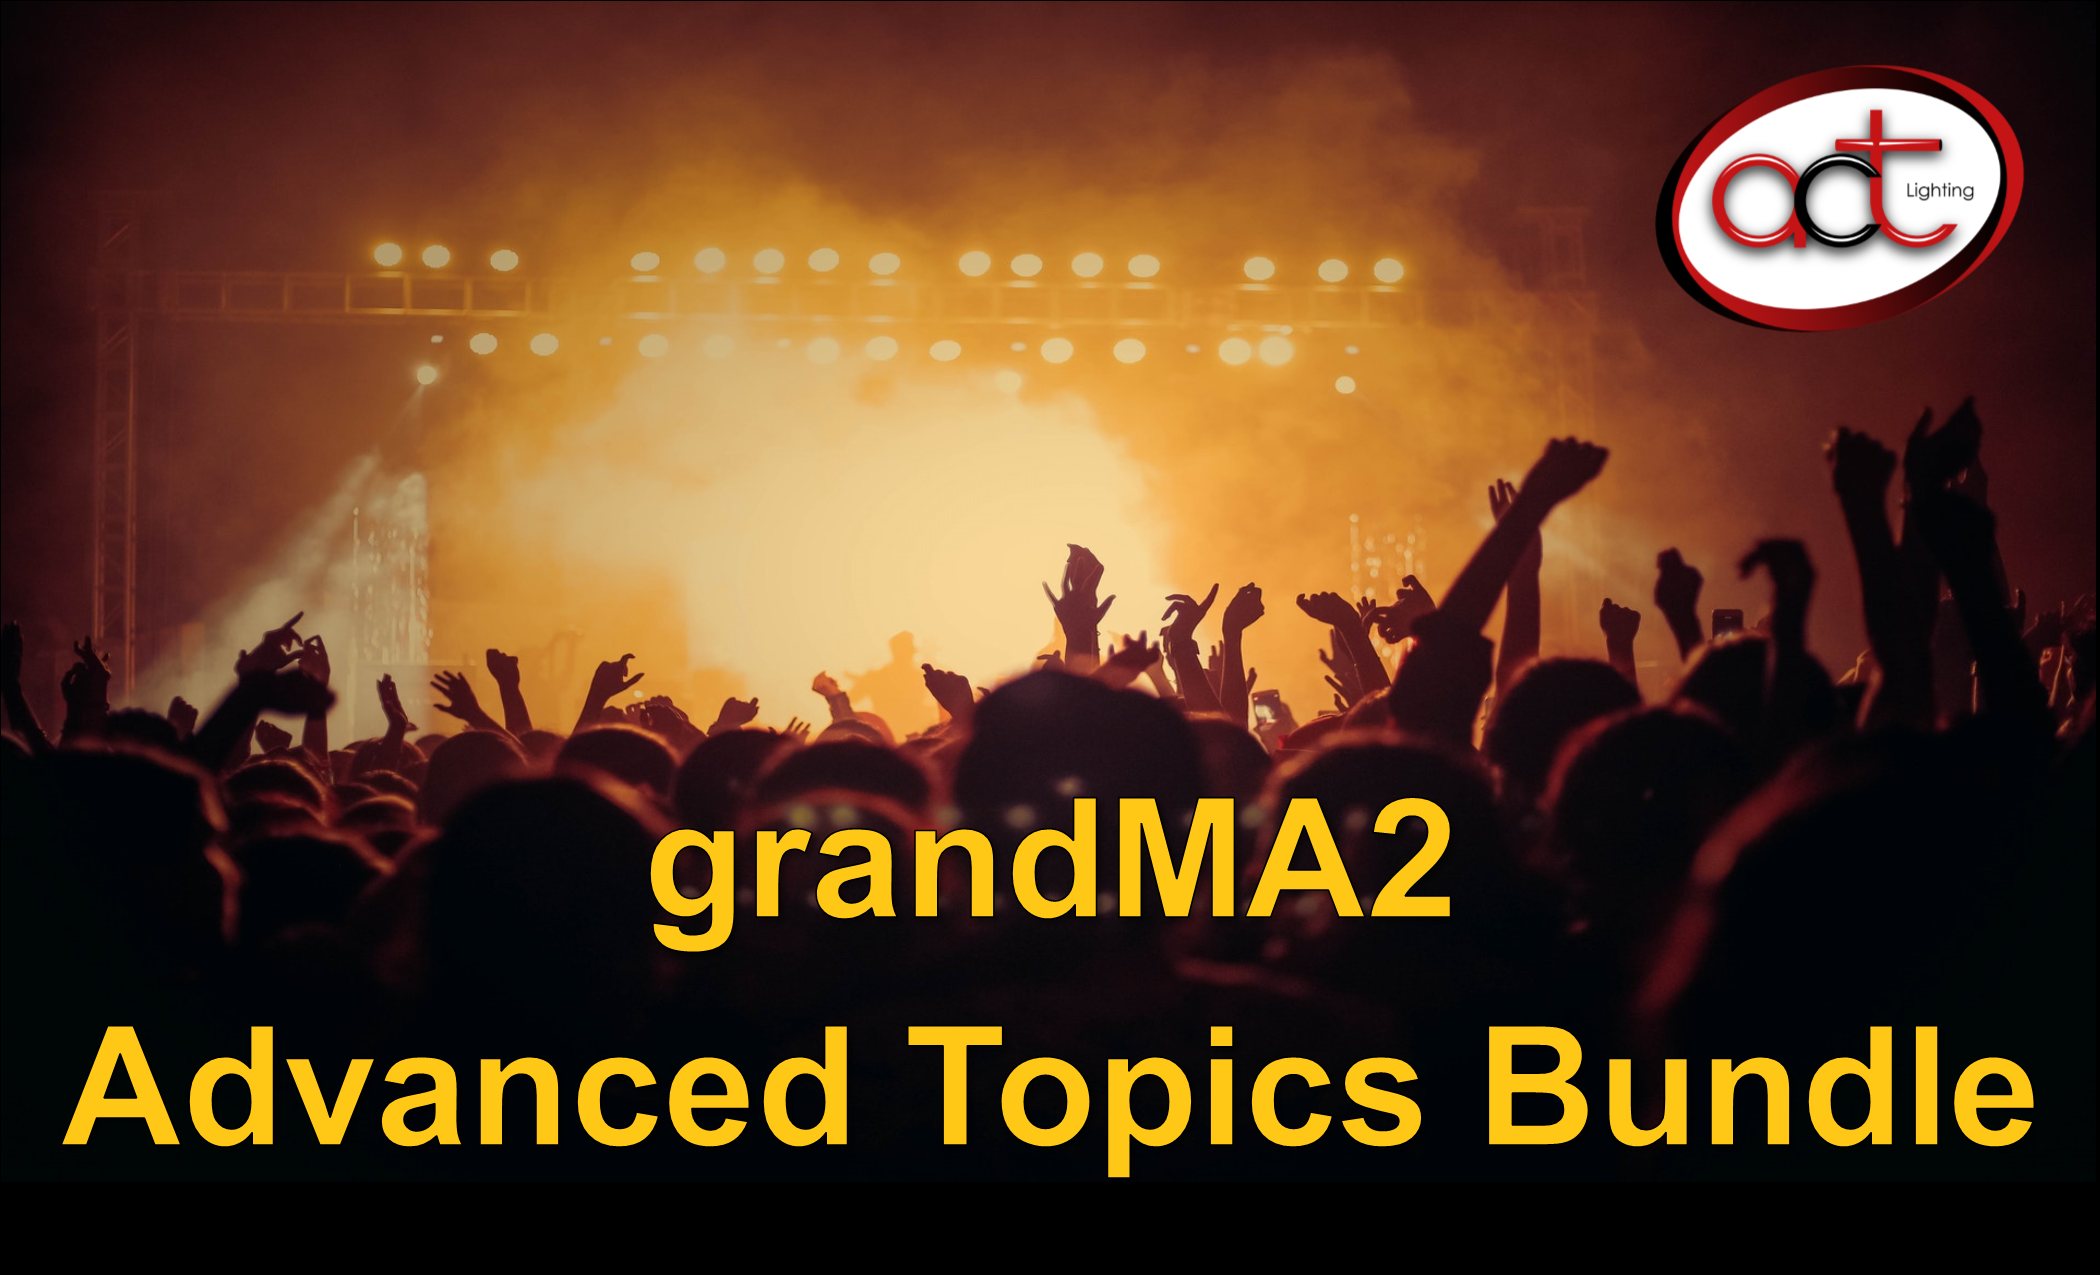 grandMA2 Advanced Topics Bundle